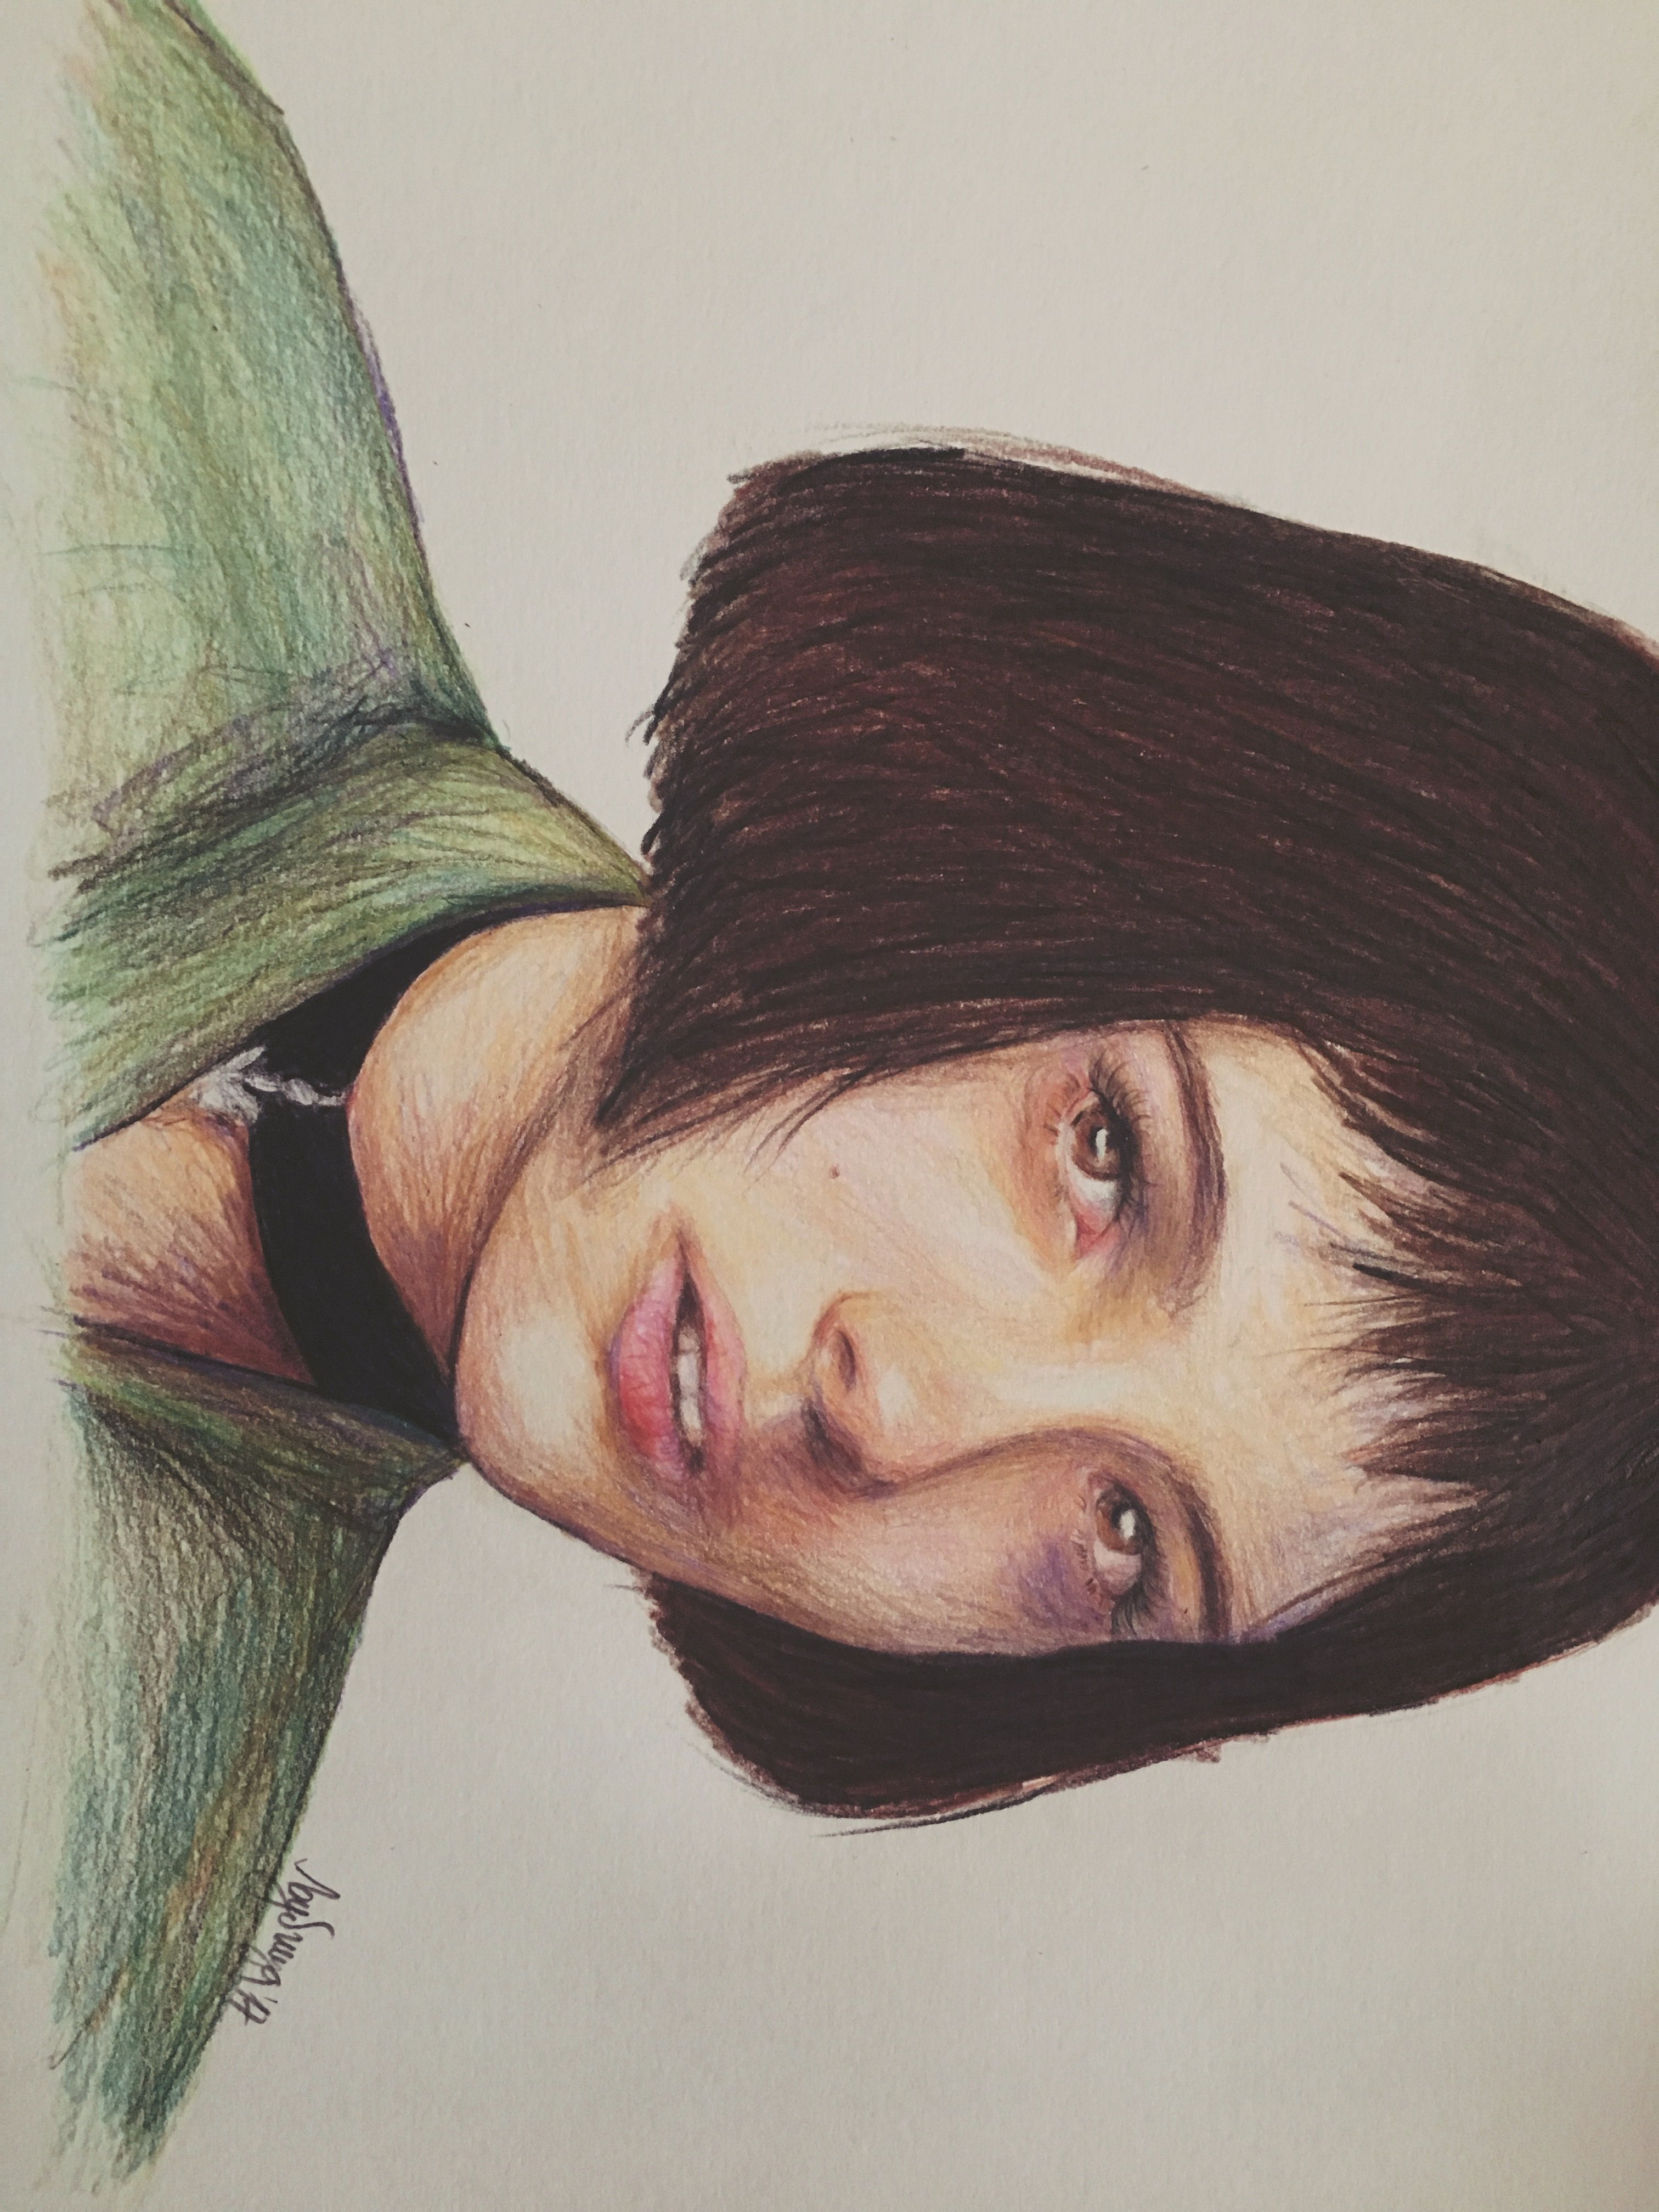 Pin lovi poe for tattoo pictures to pin on pinterest on pinterest - Mathilda Drawing Leon The Professional Movie Drawing Girl Crying Sad